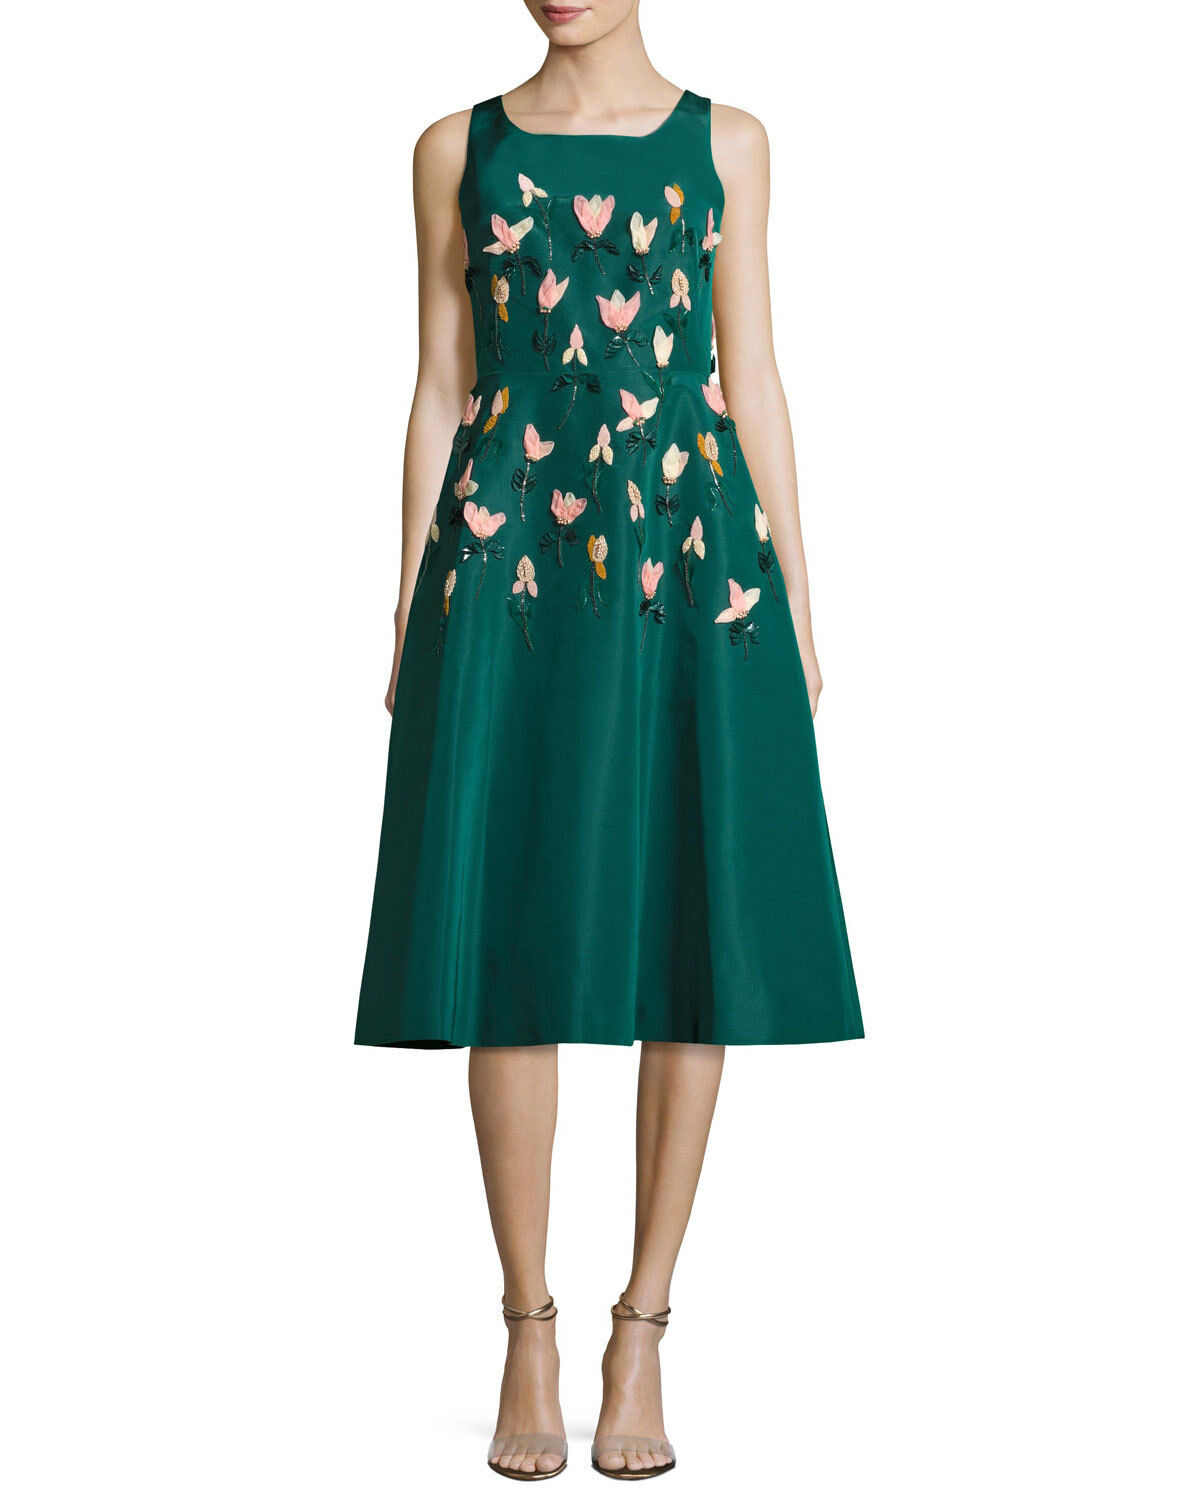 3695 New LELA pink 3 D Peach Tulip Embroidered Teal Faille A Line Green Dress 4